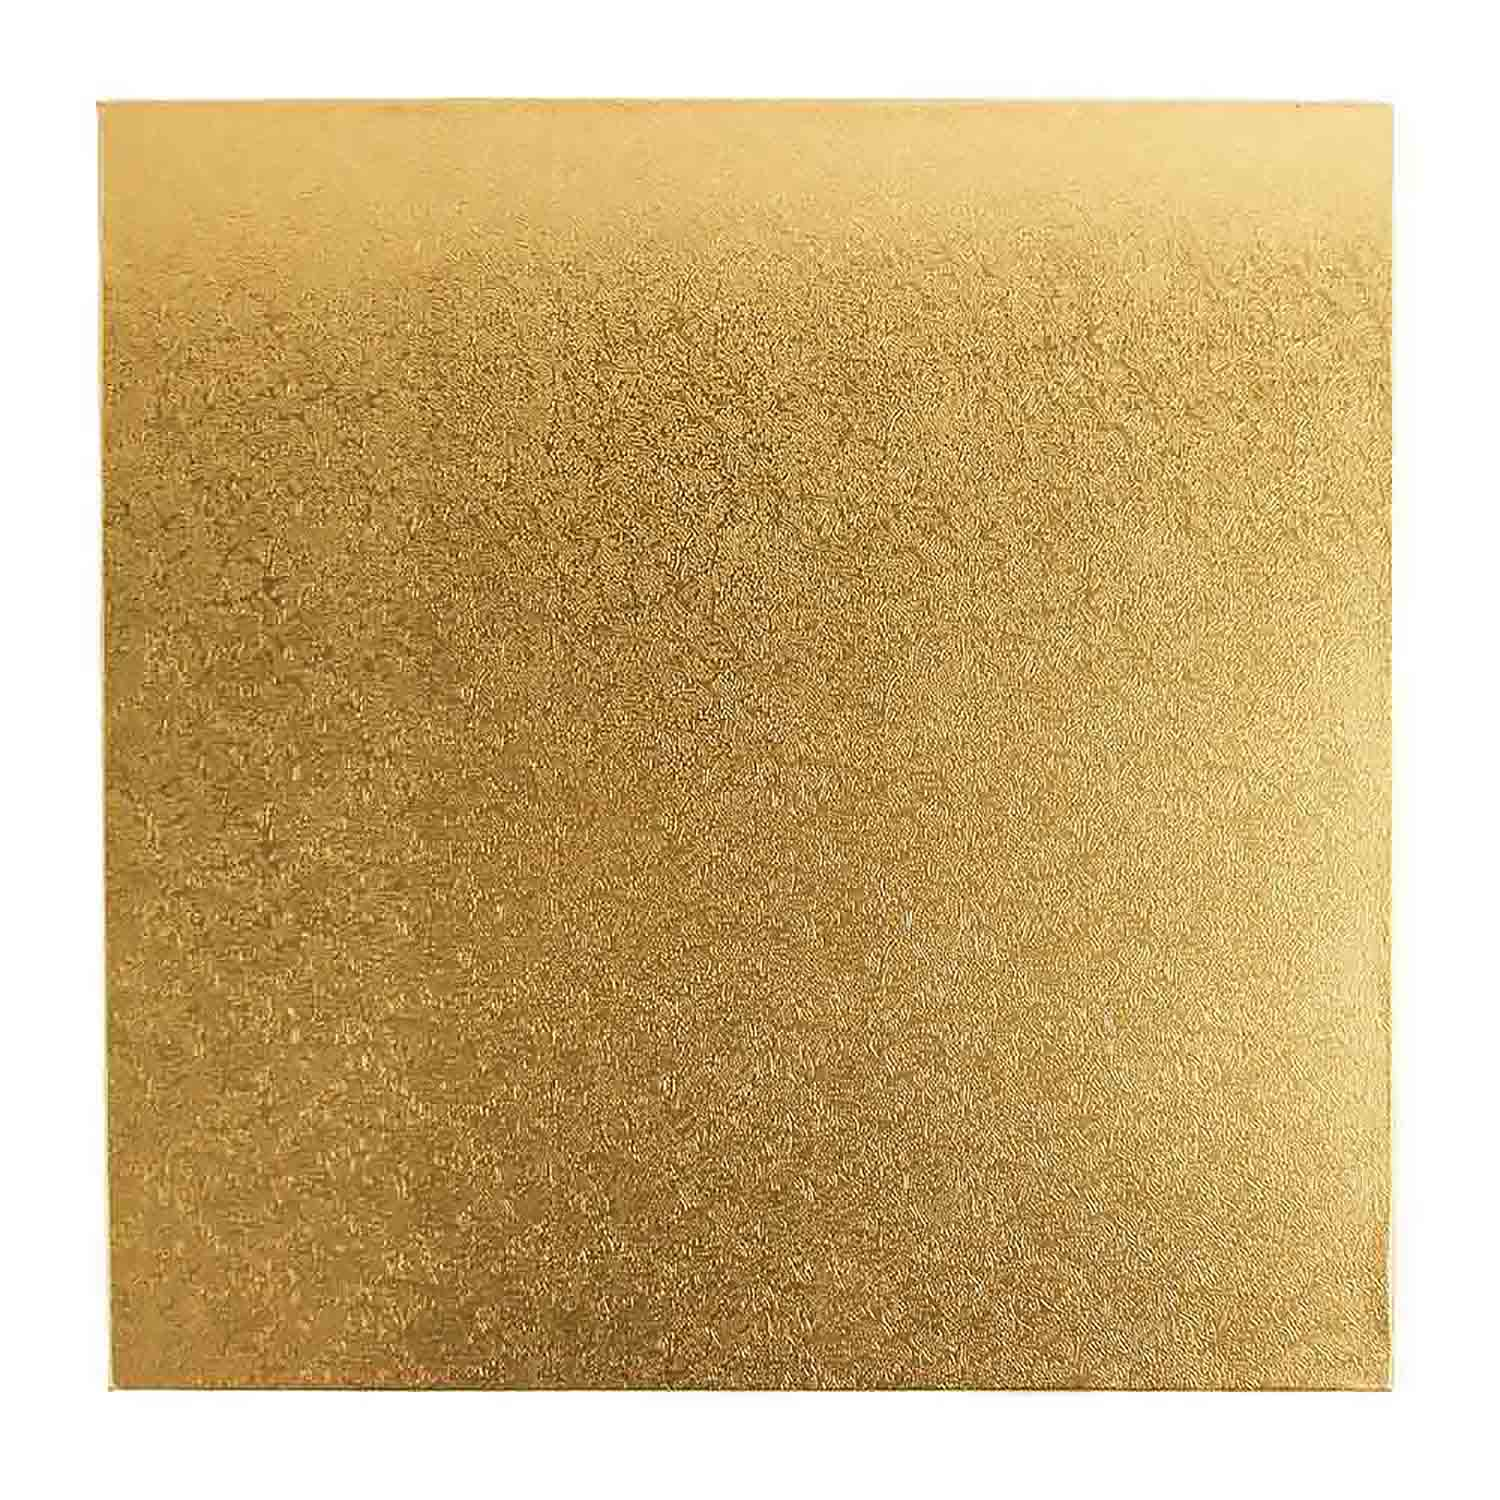 "14"" Square Gold Foil Sturdy Board"